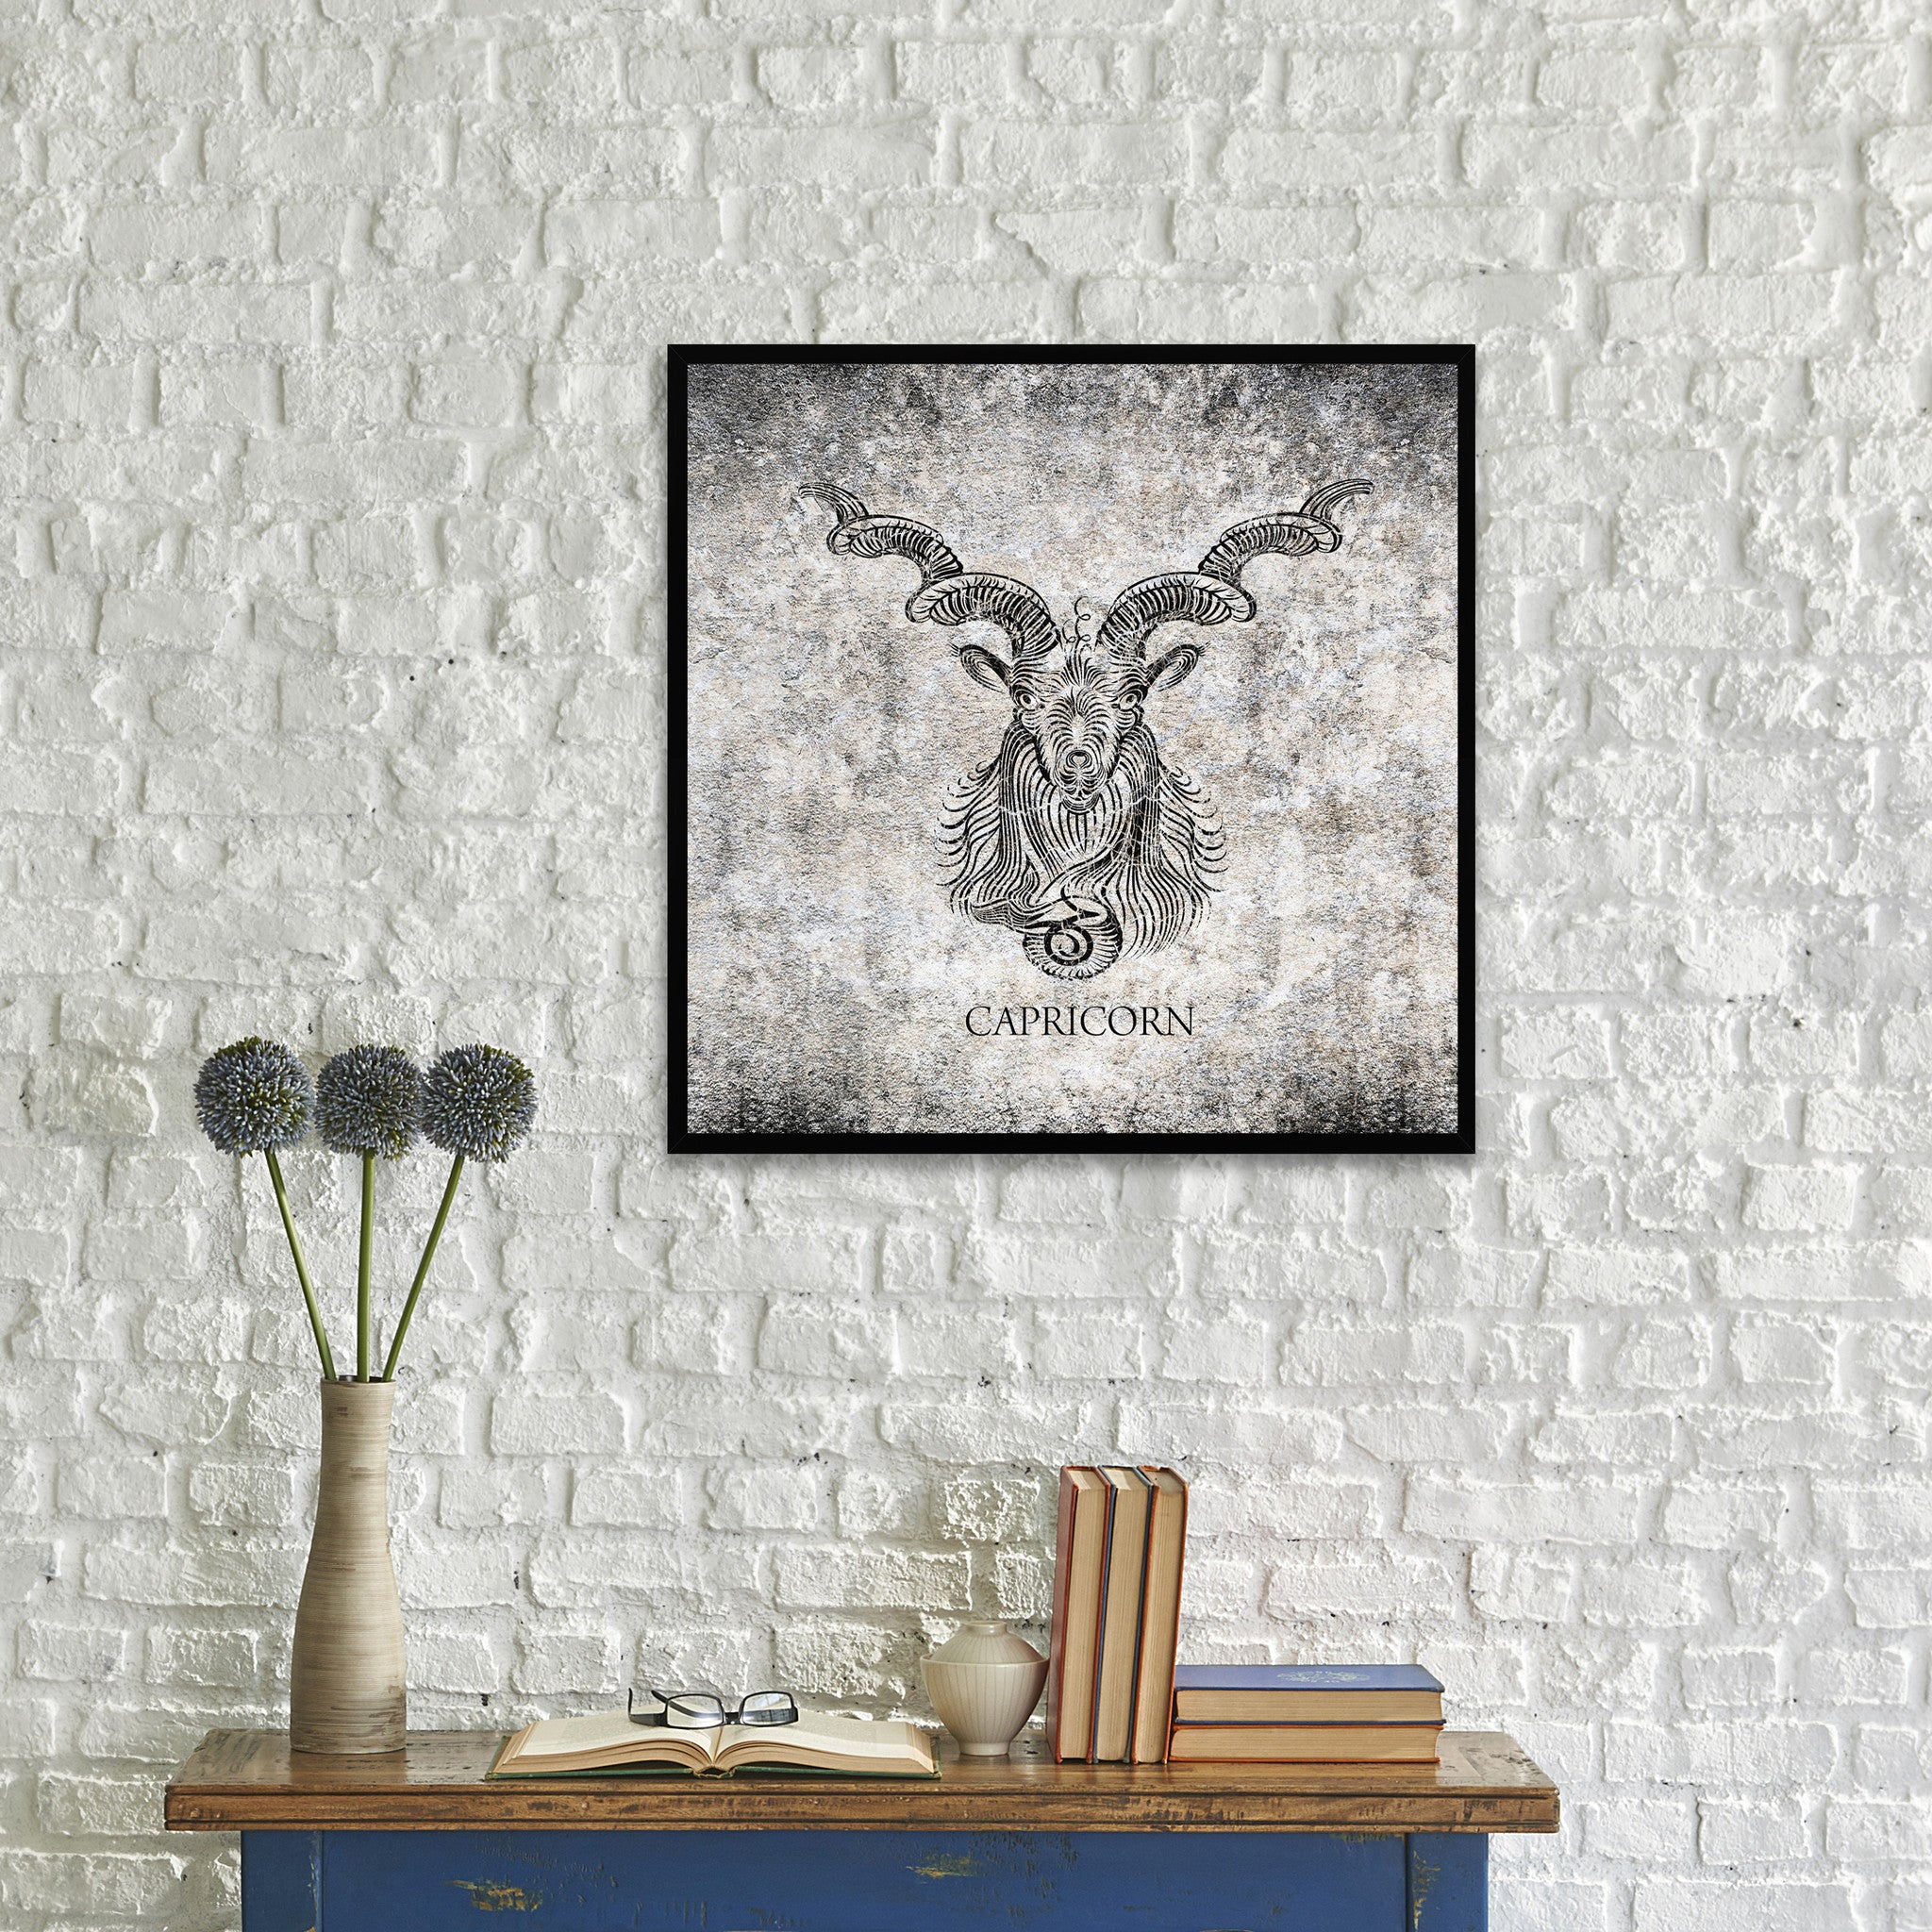 Capricorn Horoscope Black Canvas Print, Black Custom Frame